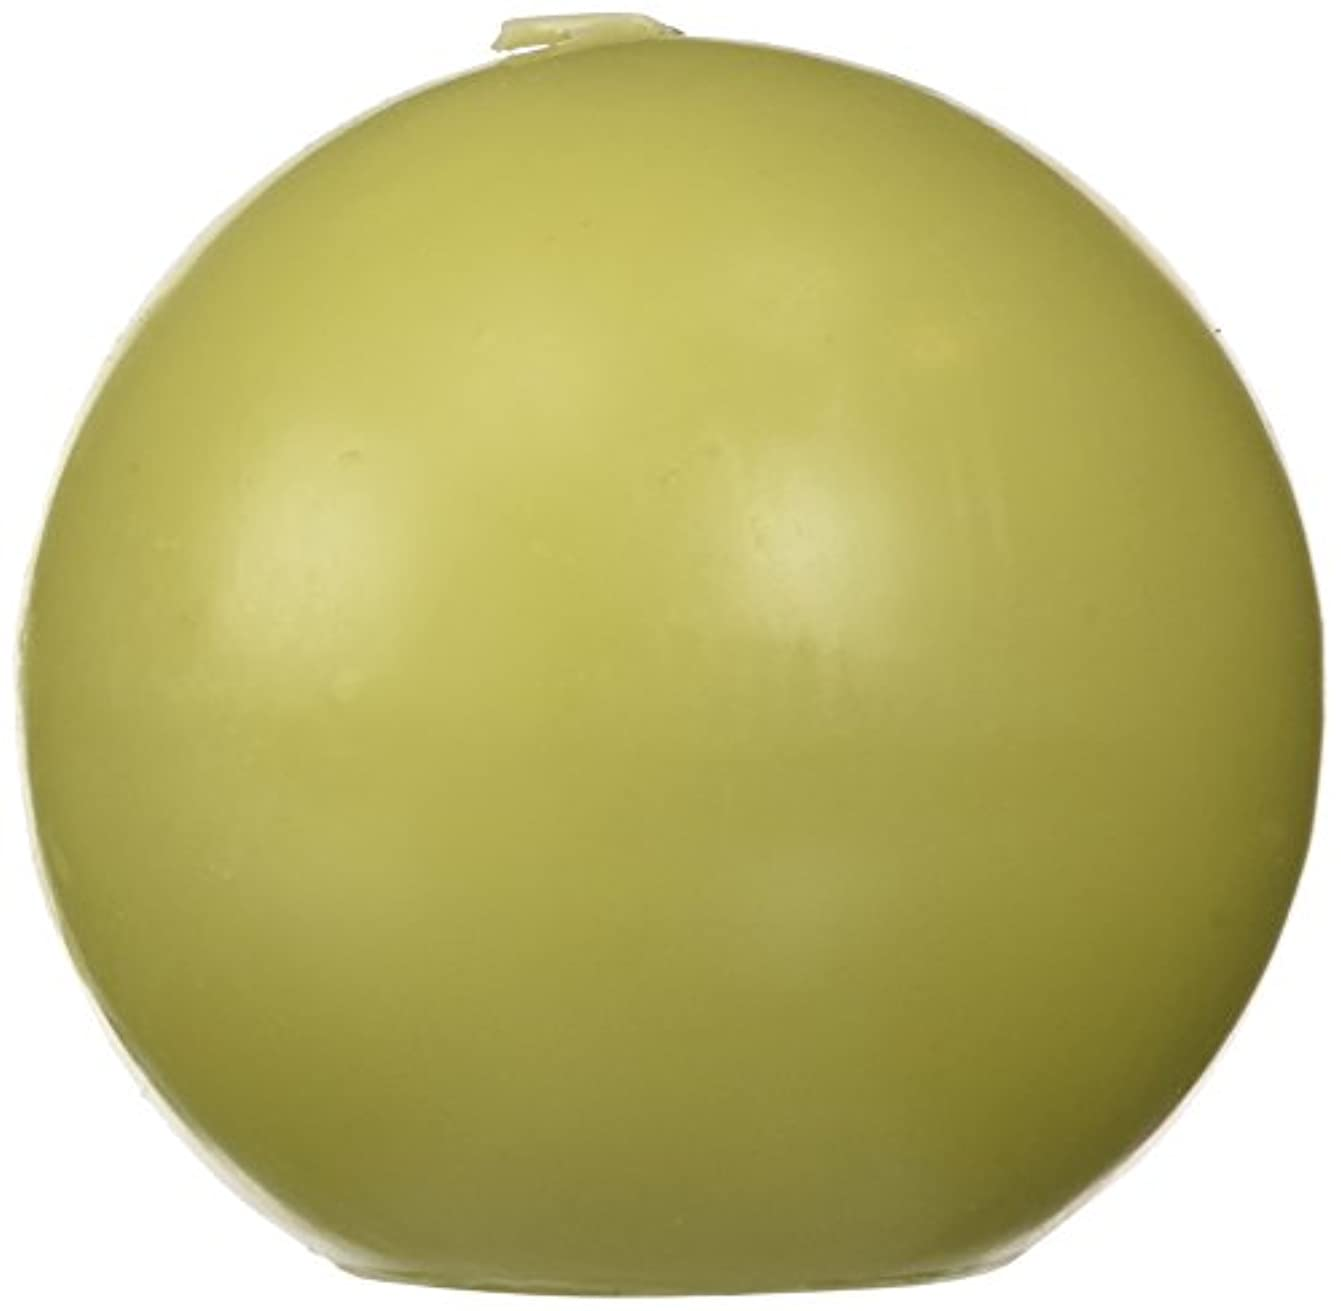 負荷苦い別々にZest Candle CBZ-032 4 in. Sage Green Ball Candles -2pc-Box